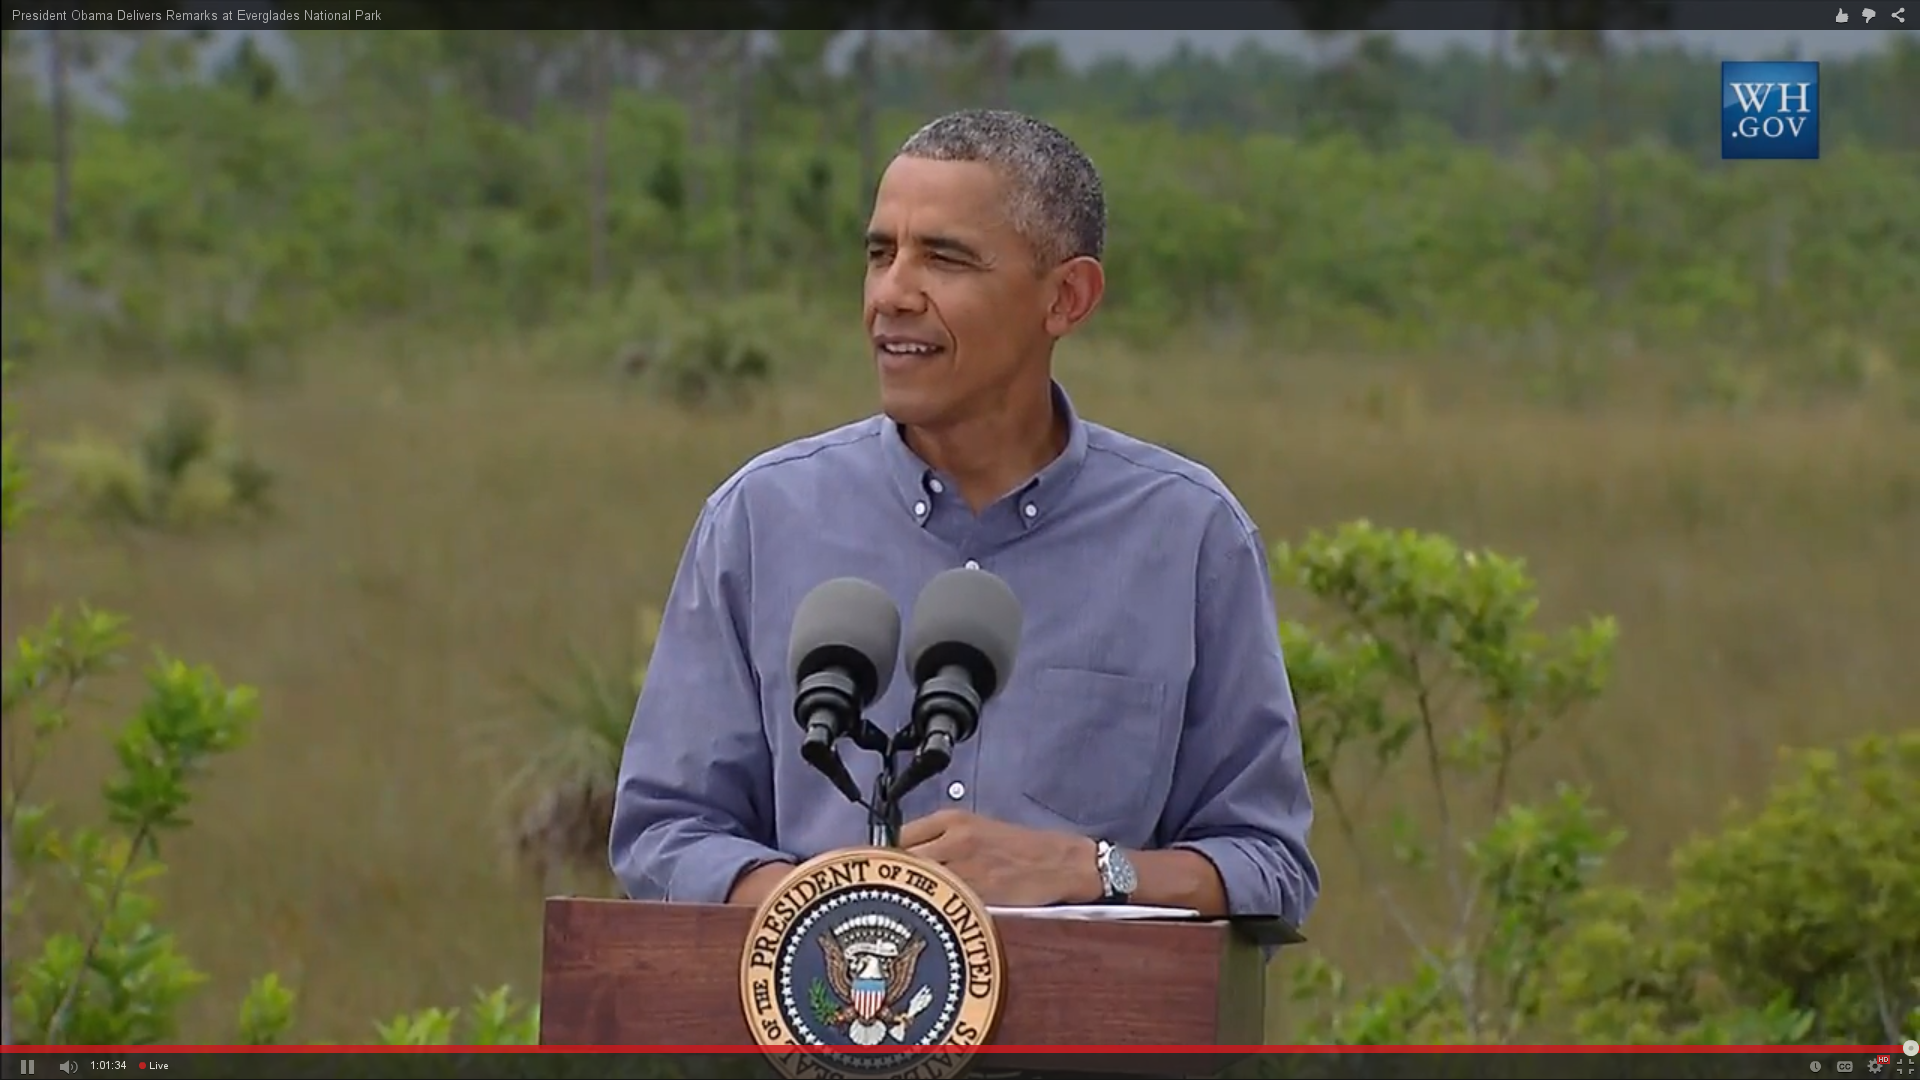 President Obama speaking at Everglades National Park